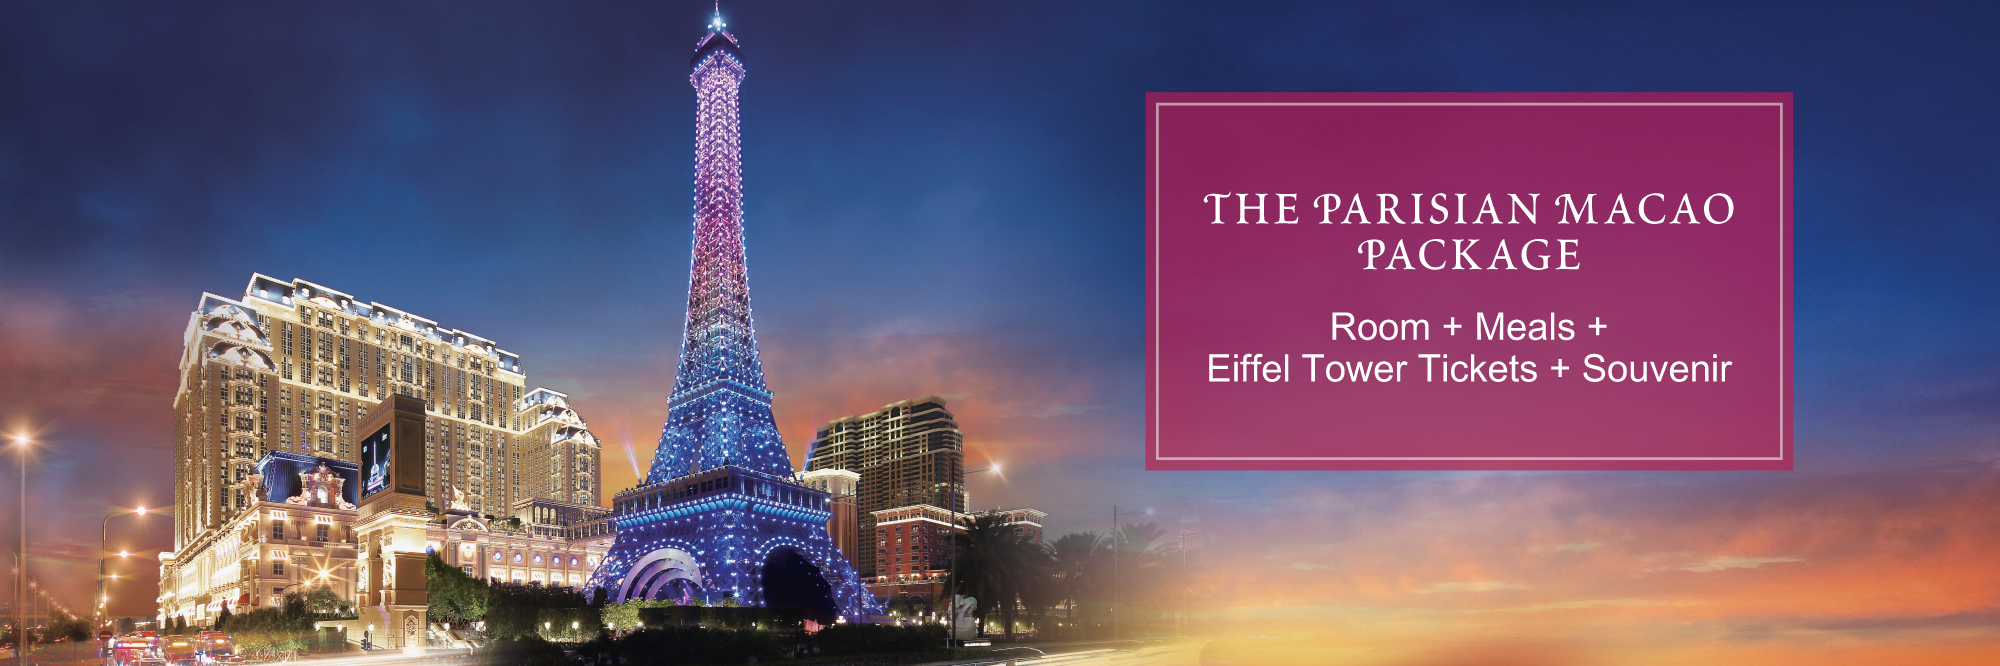 The Parisian Macao 패키지